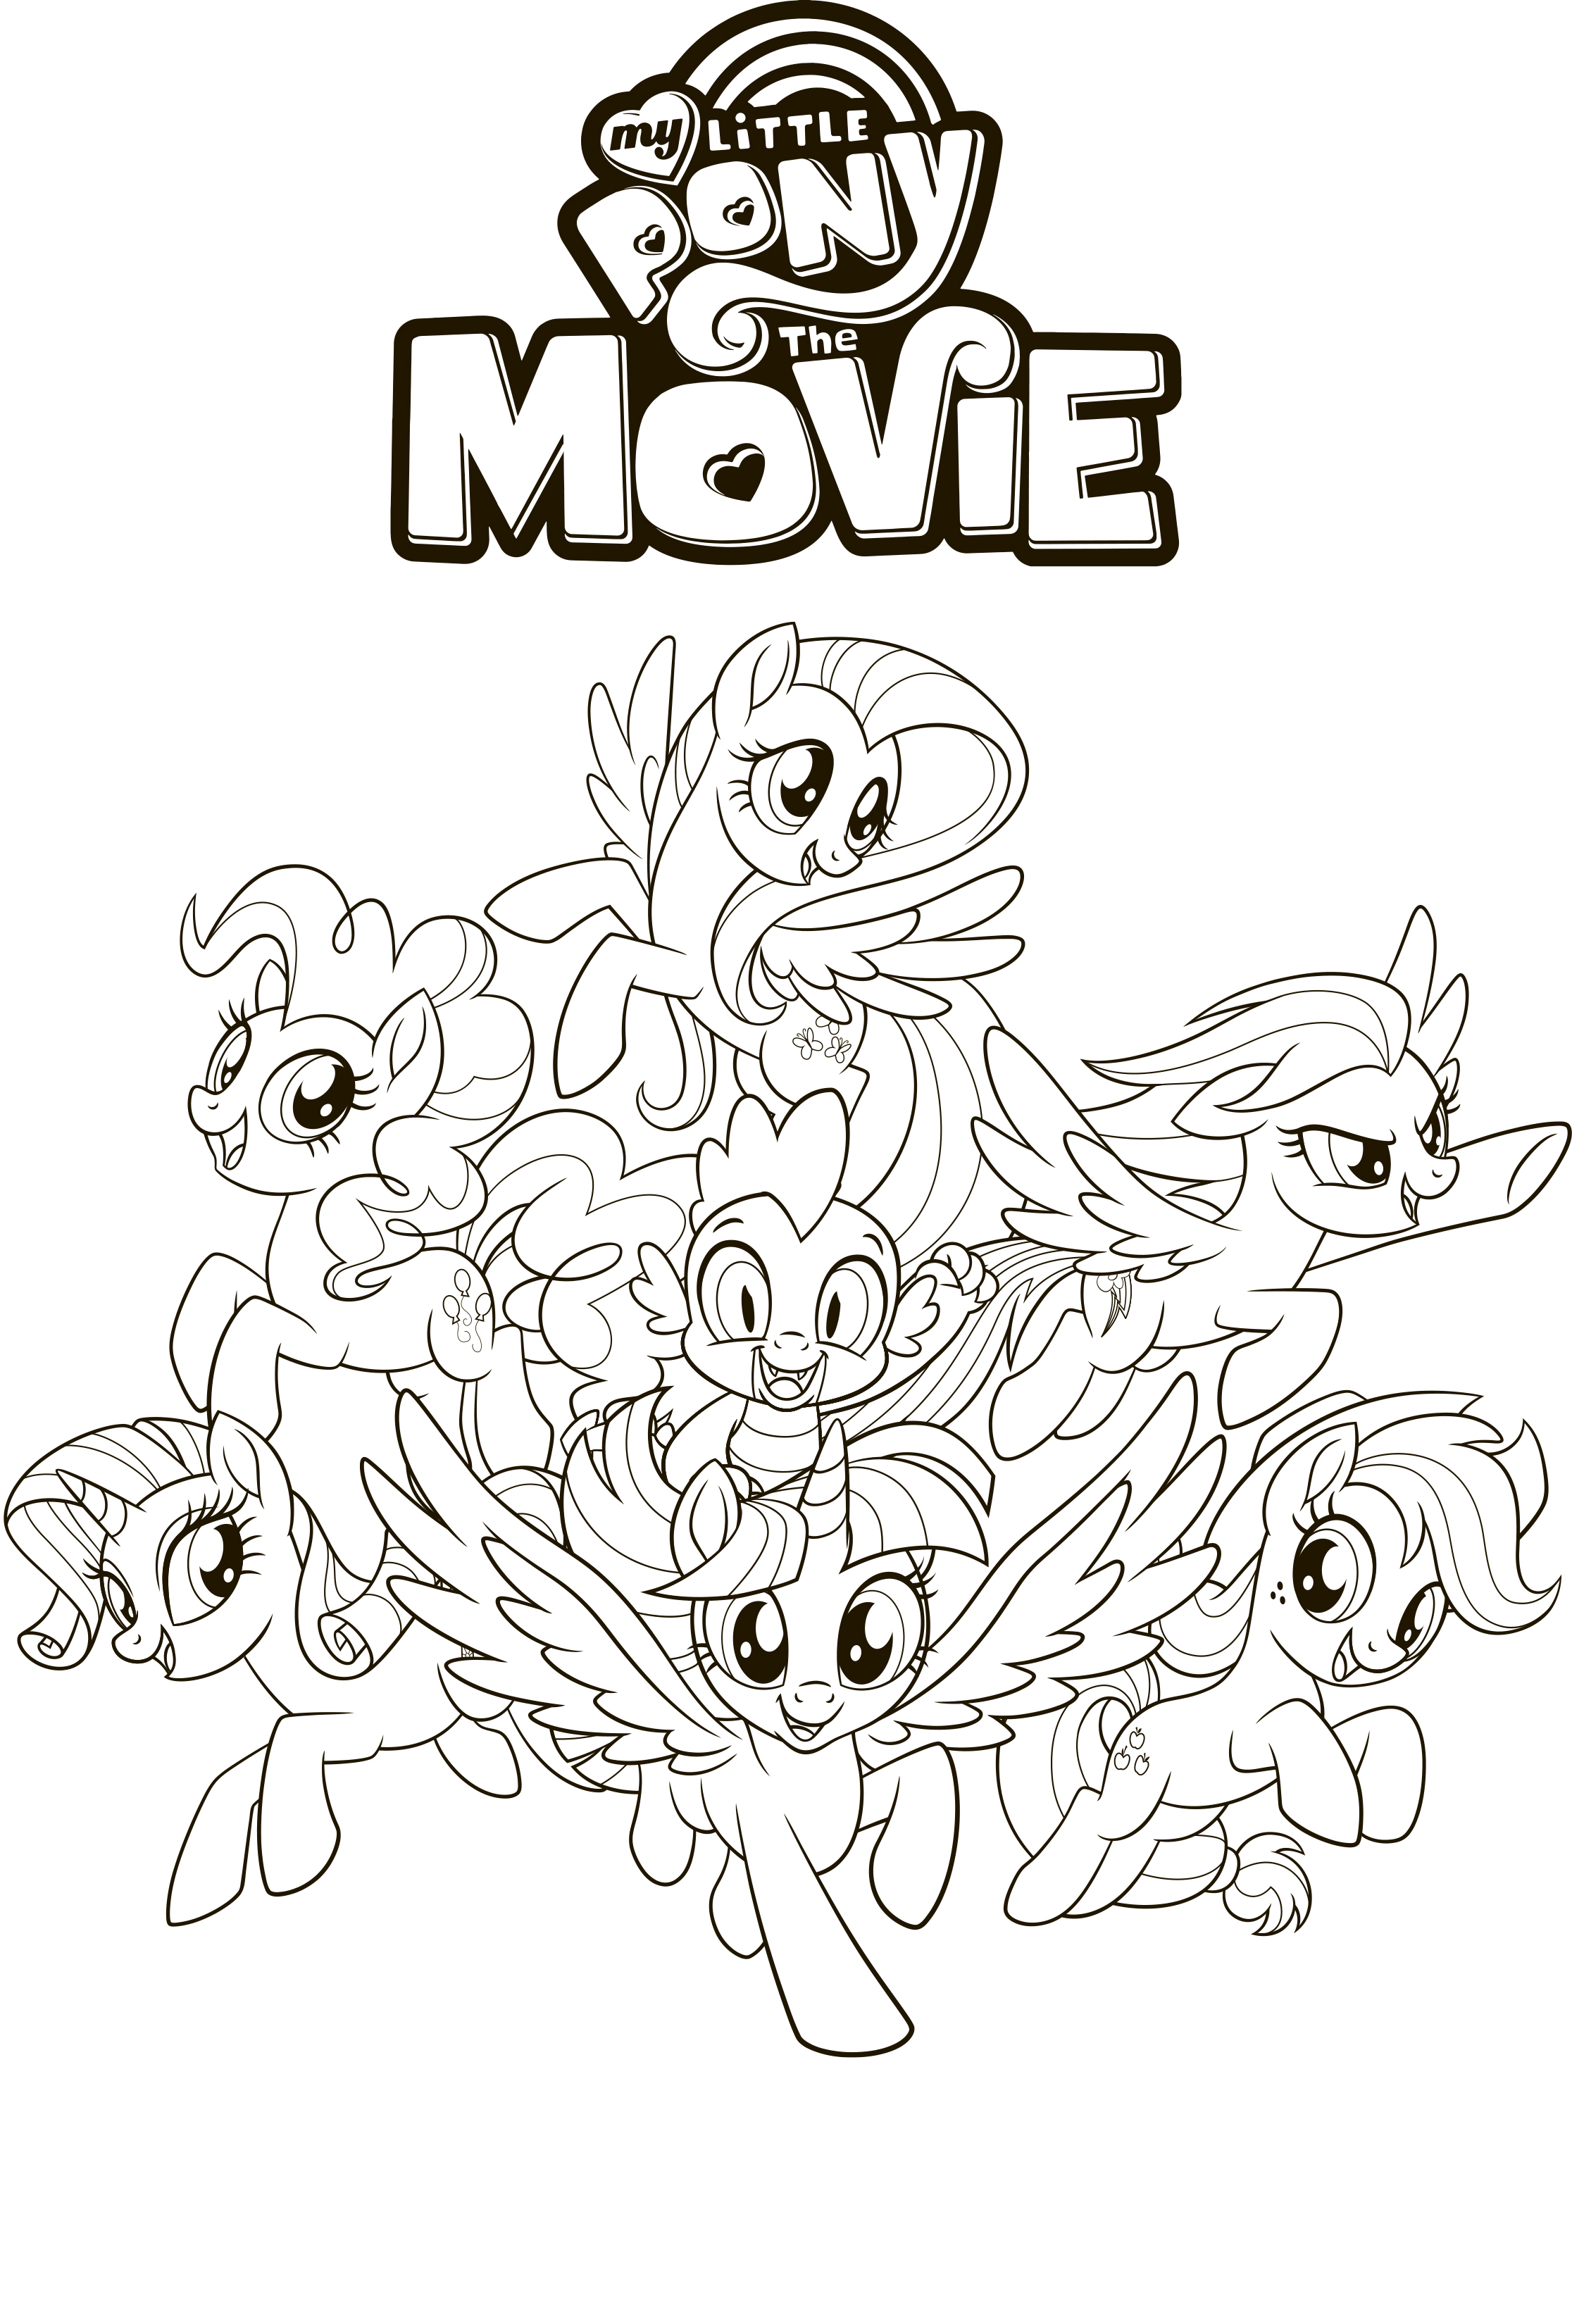 My Little Pony: The Movie coloring pages - YouLoveIt.com